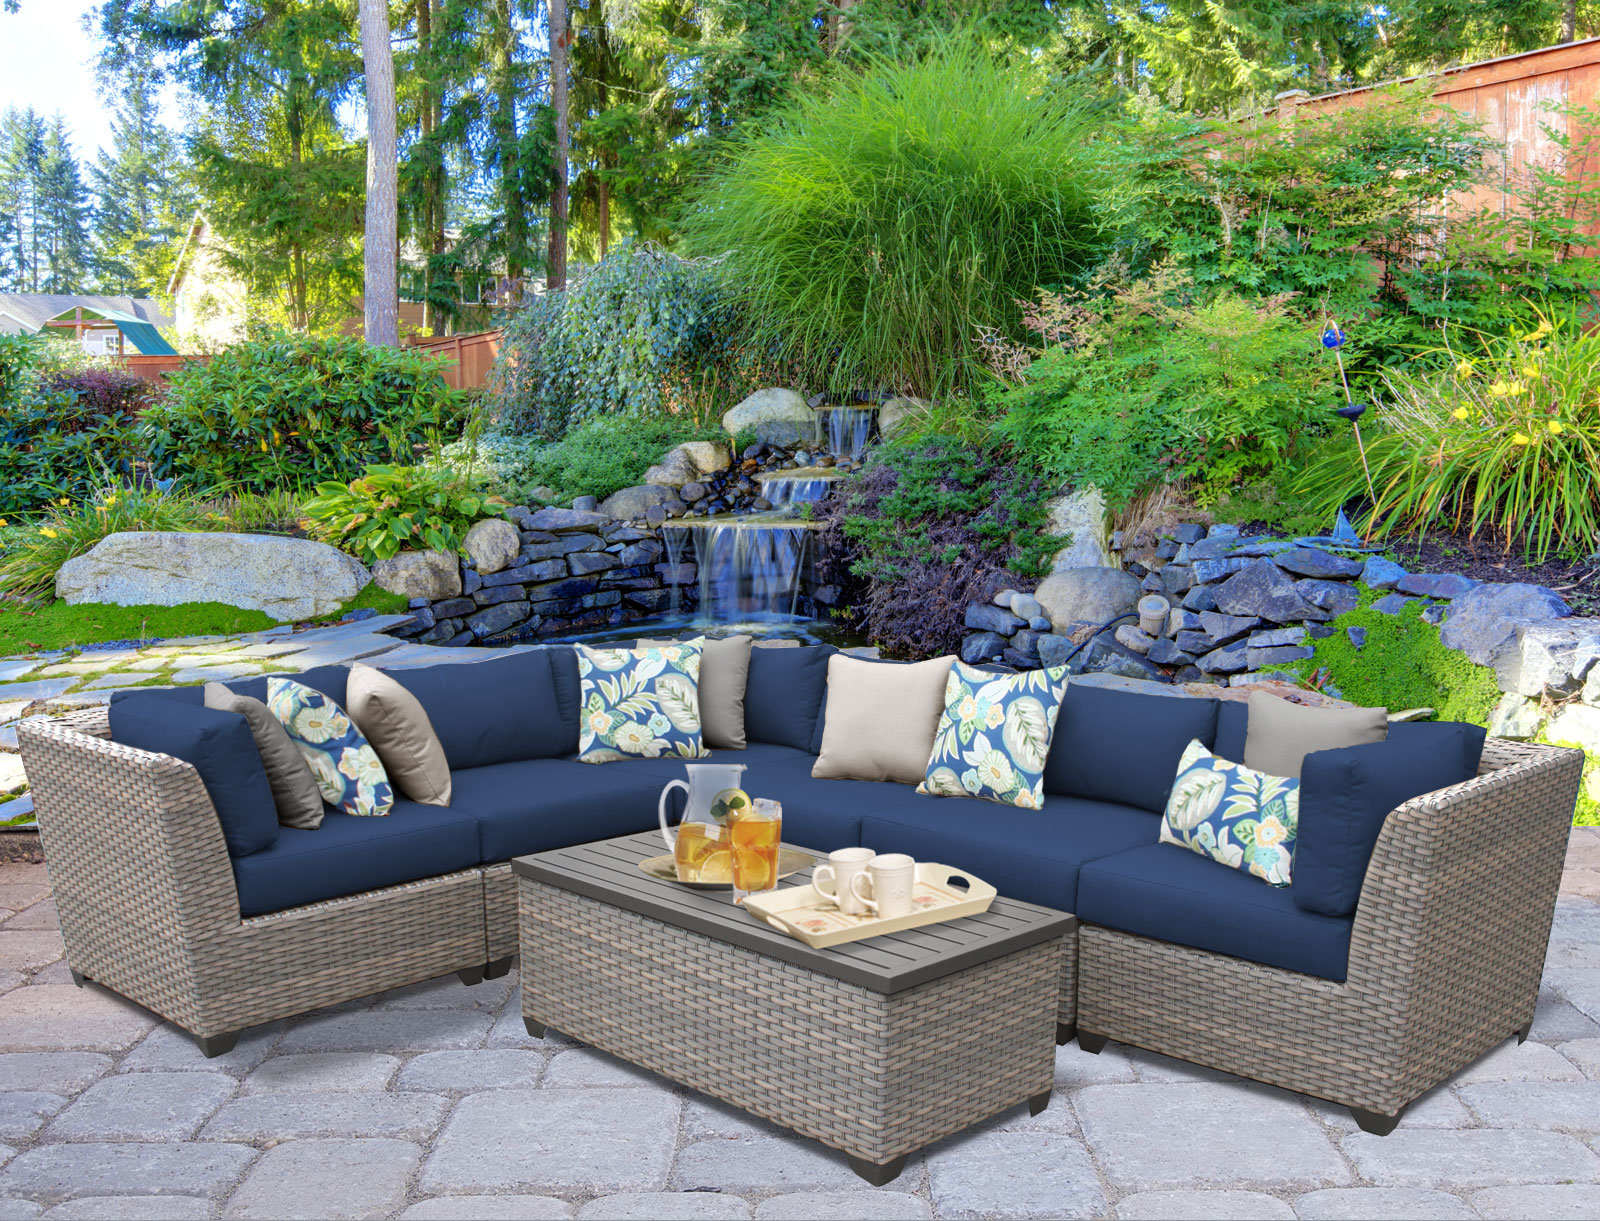 2020 Meeks 7 Piece Rattan Sectional Seating Group With Cushions Within Meeks Patio Sofas With Cushions (View 4 of 20)